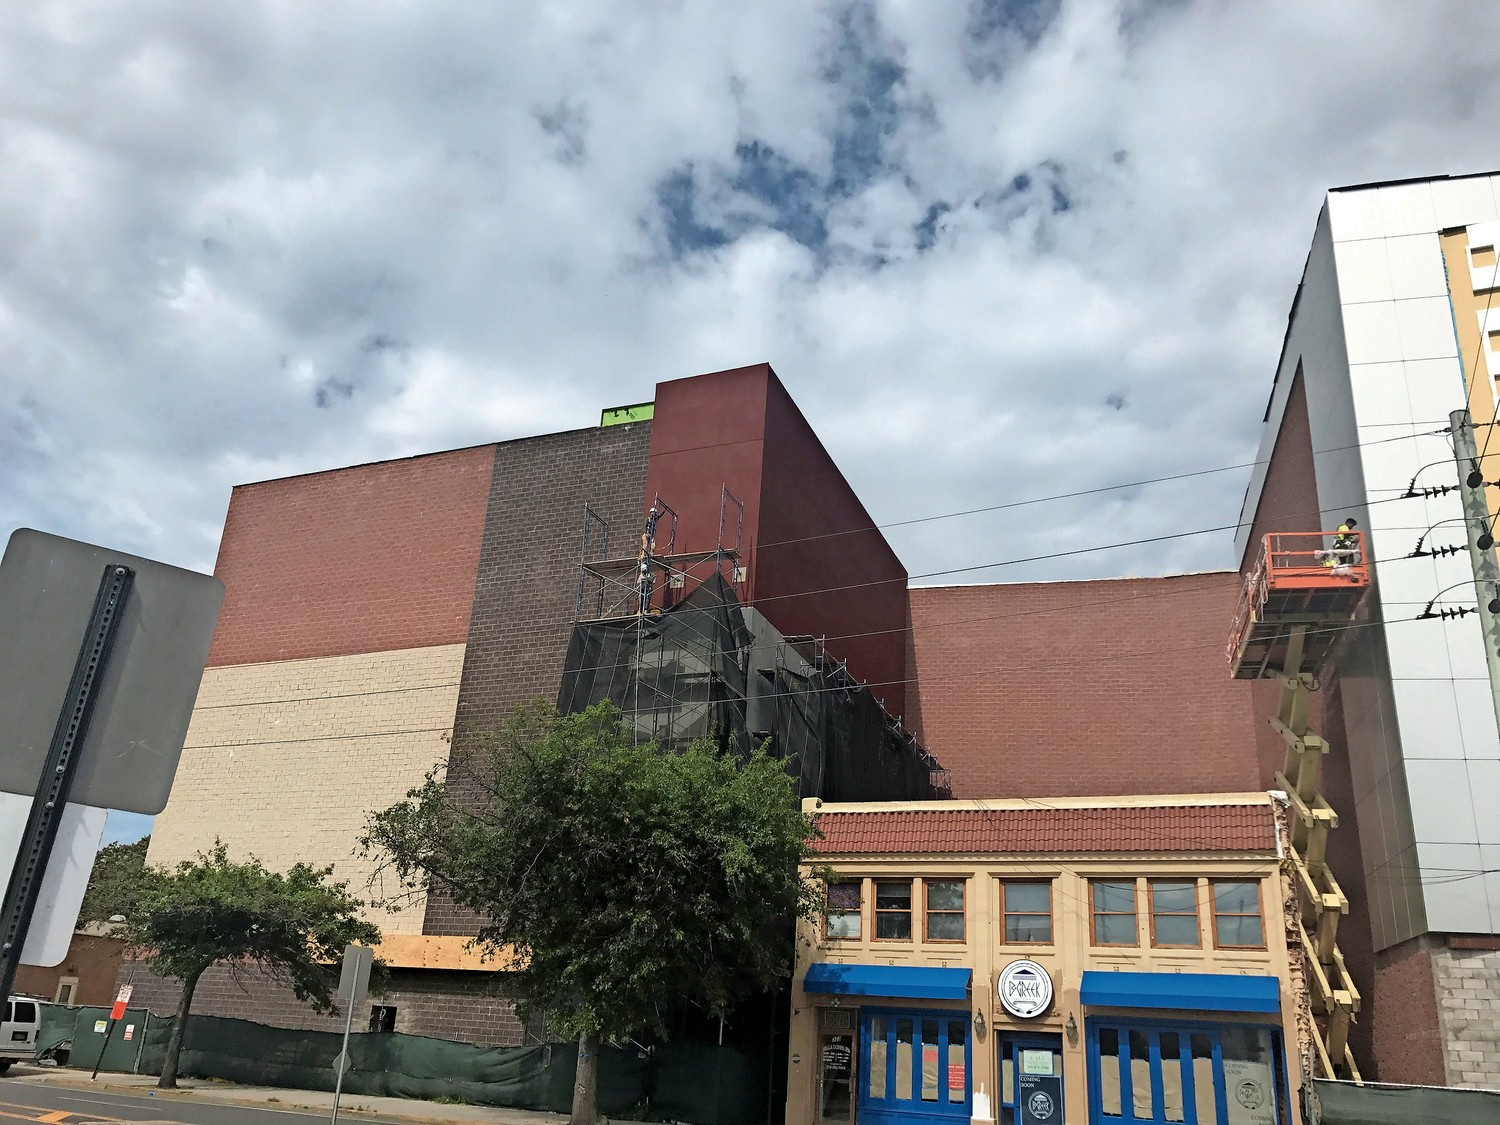 The movie theater remains under construction on Merrick Road, and Mayor Alan Beach said that it would likely open a little later than the previously announced date of Feb. 9.